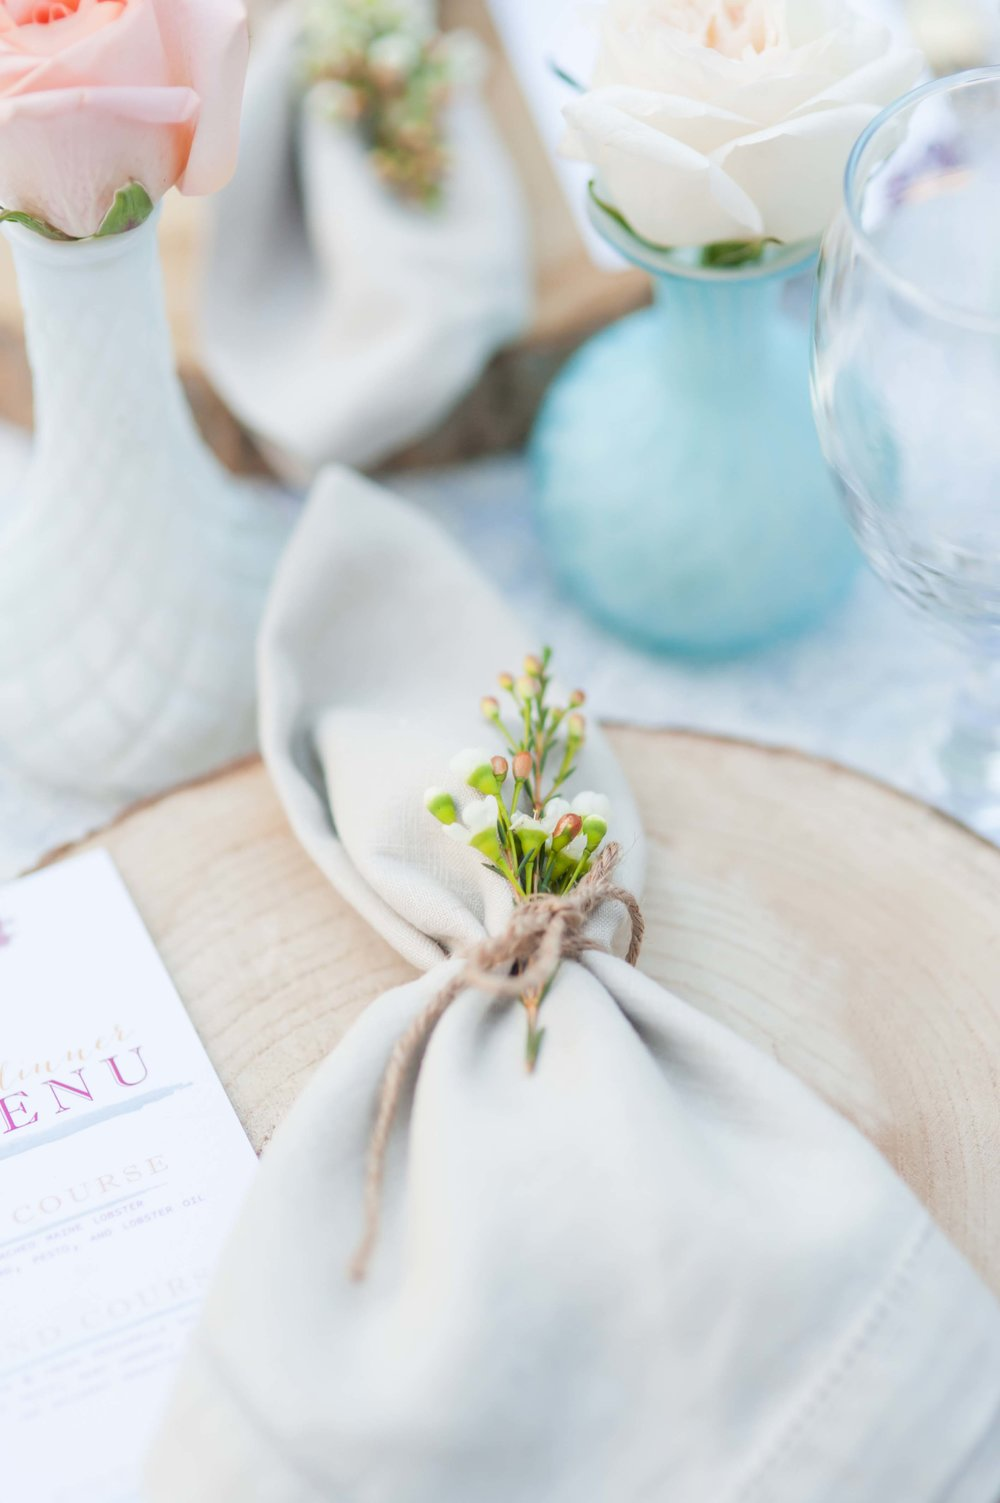 Rustic Romance tablescape 2 - editted.jpg